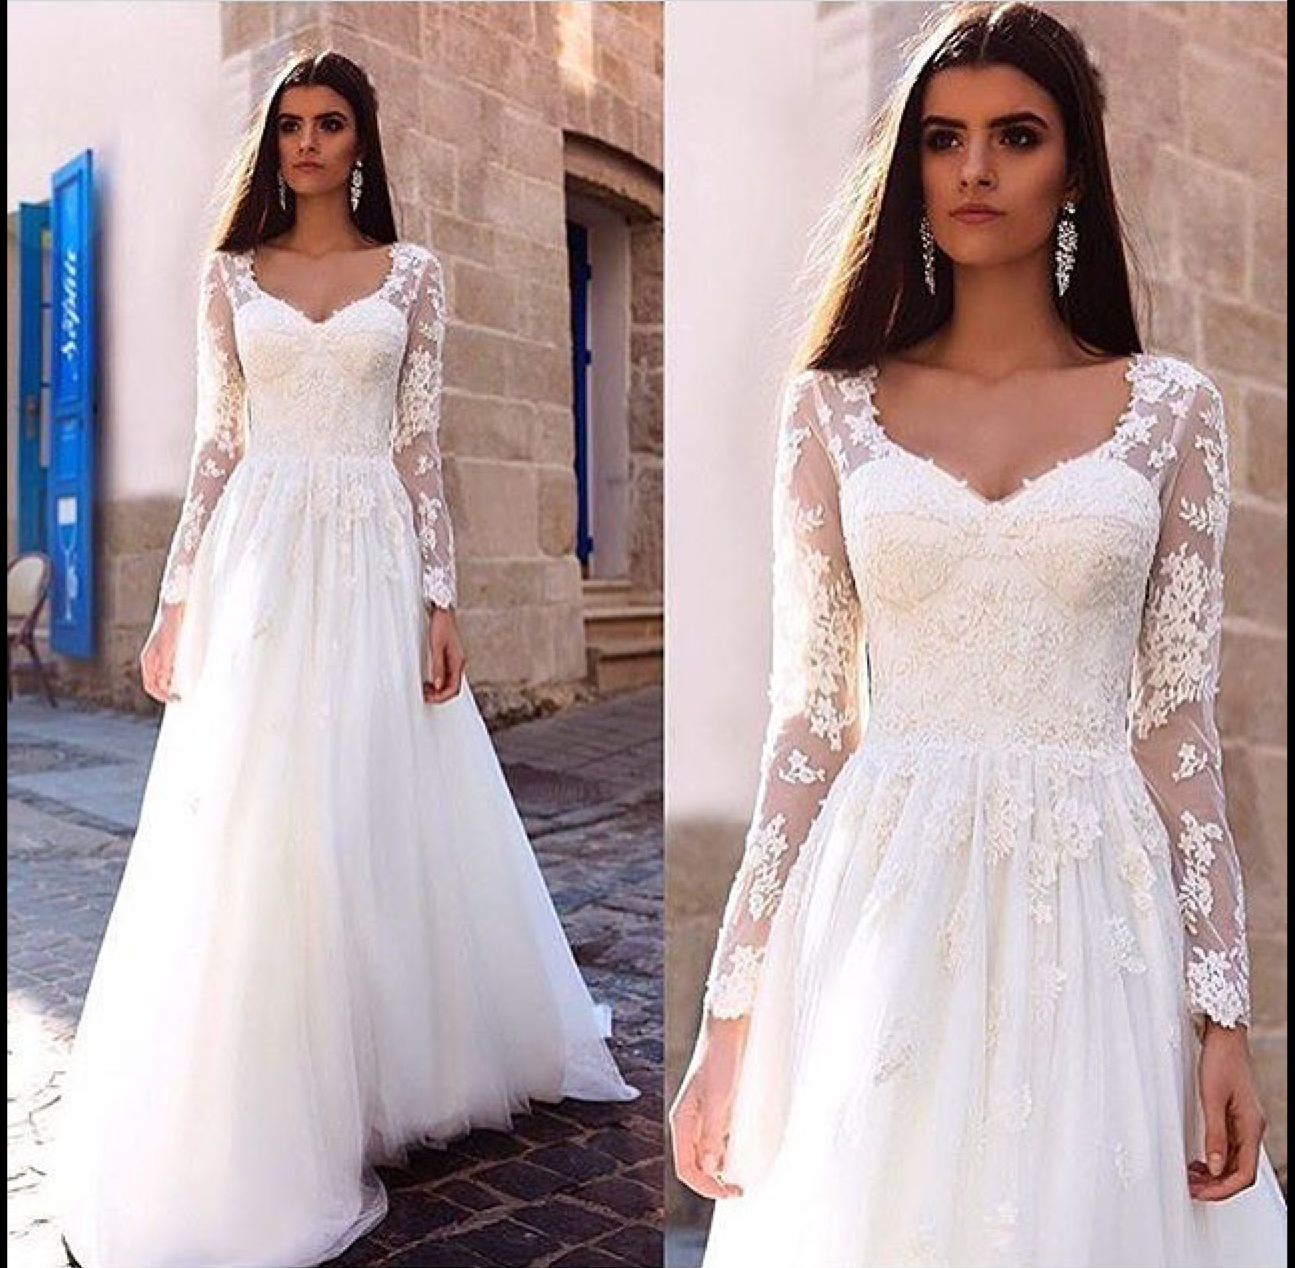 Long Sleeve Lace Wedding Dress Lace Ball Gown Vintage Bridal Gown ...